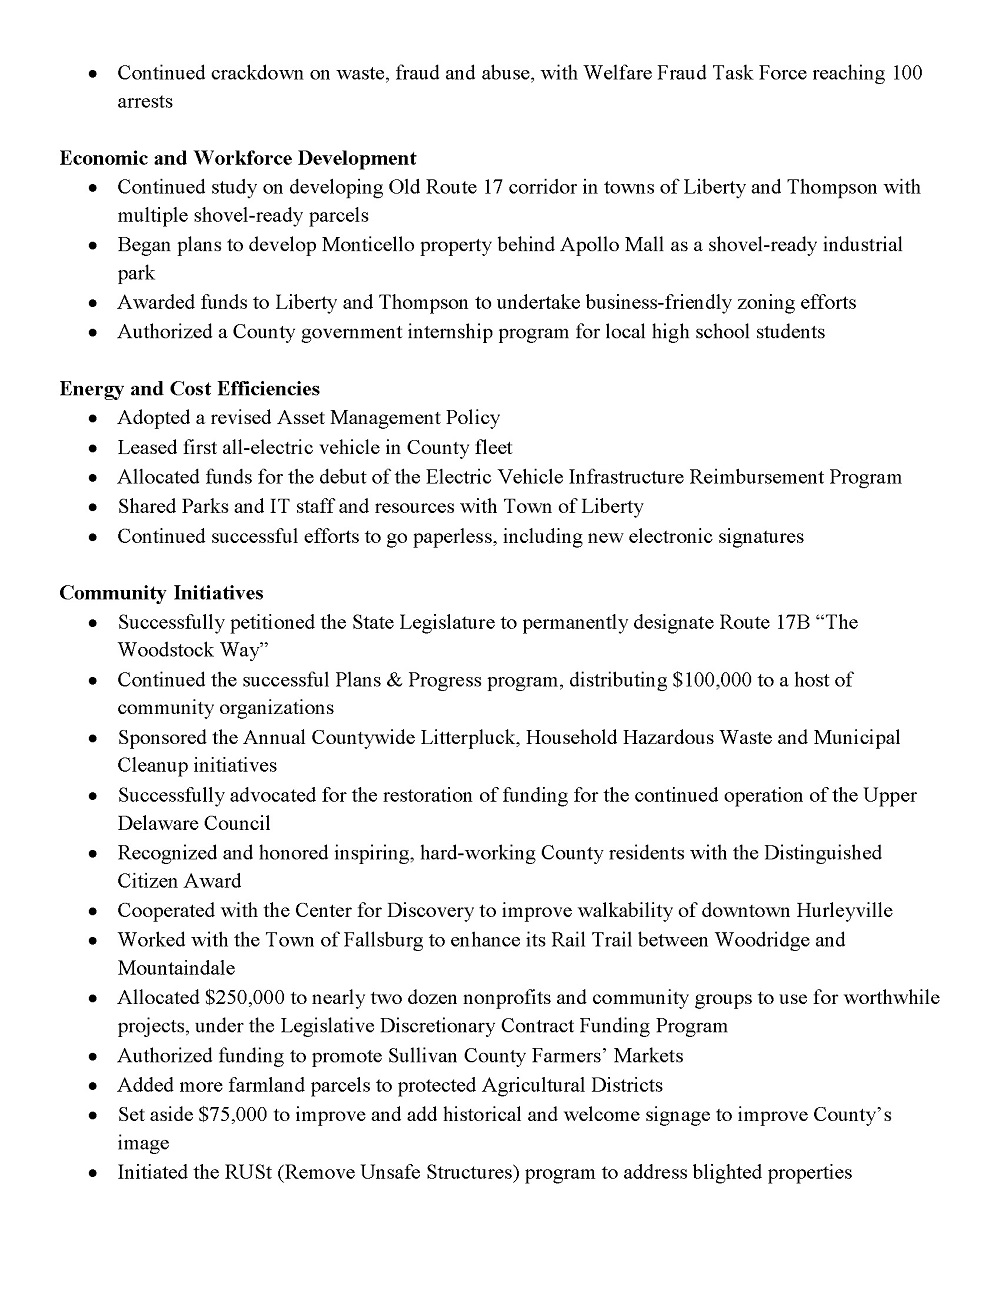 2018 Legislature Accomplishments, Third Page